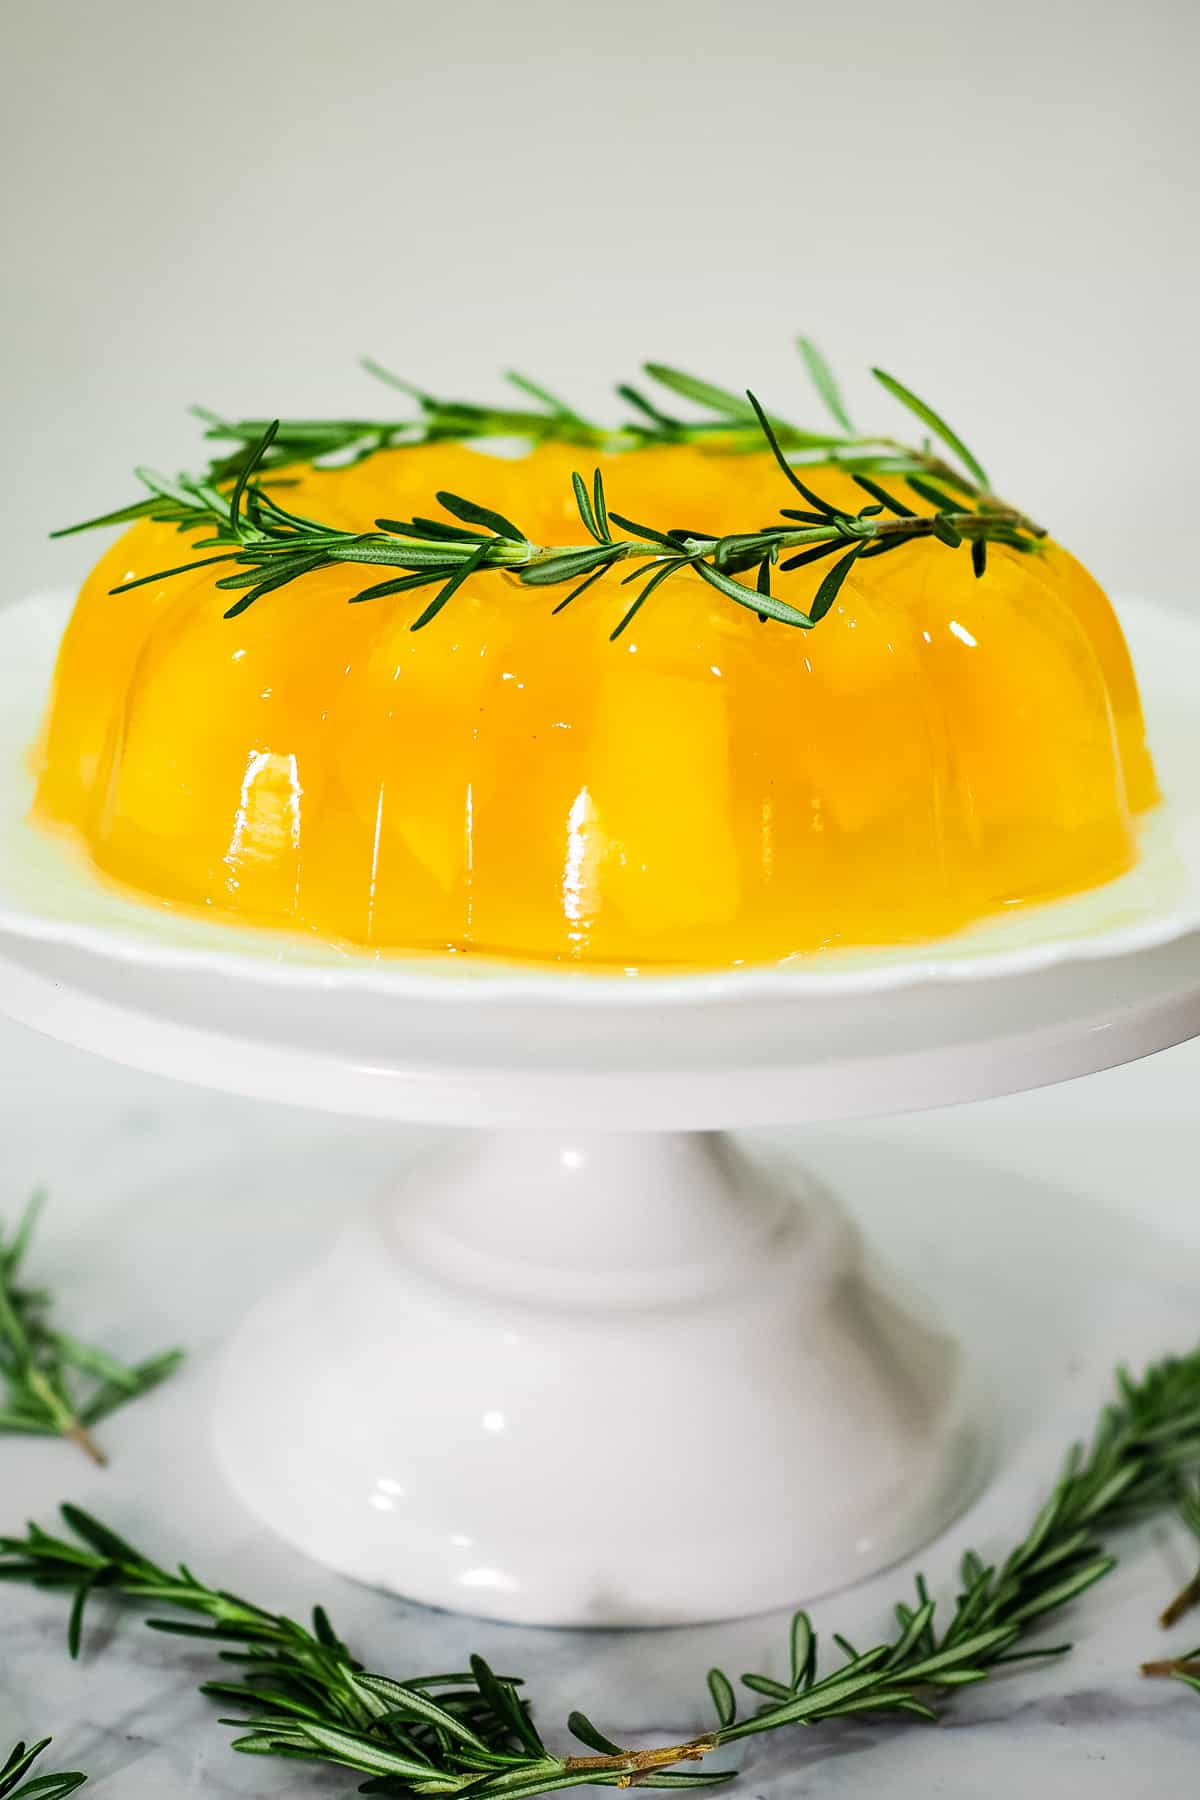 A yellow jelly in a bundt shape with rosemary leaves garnish